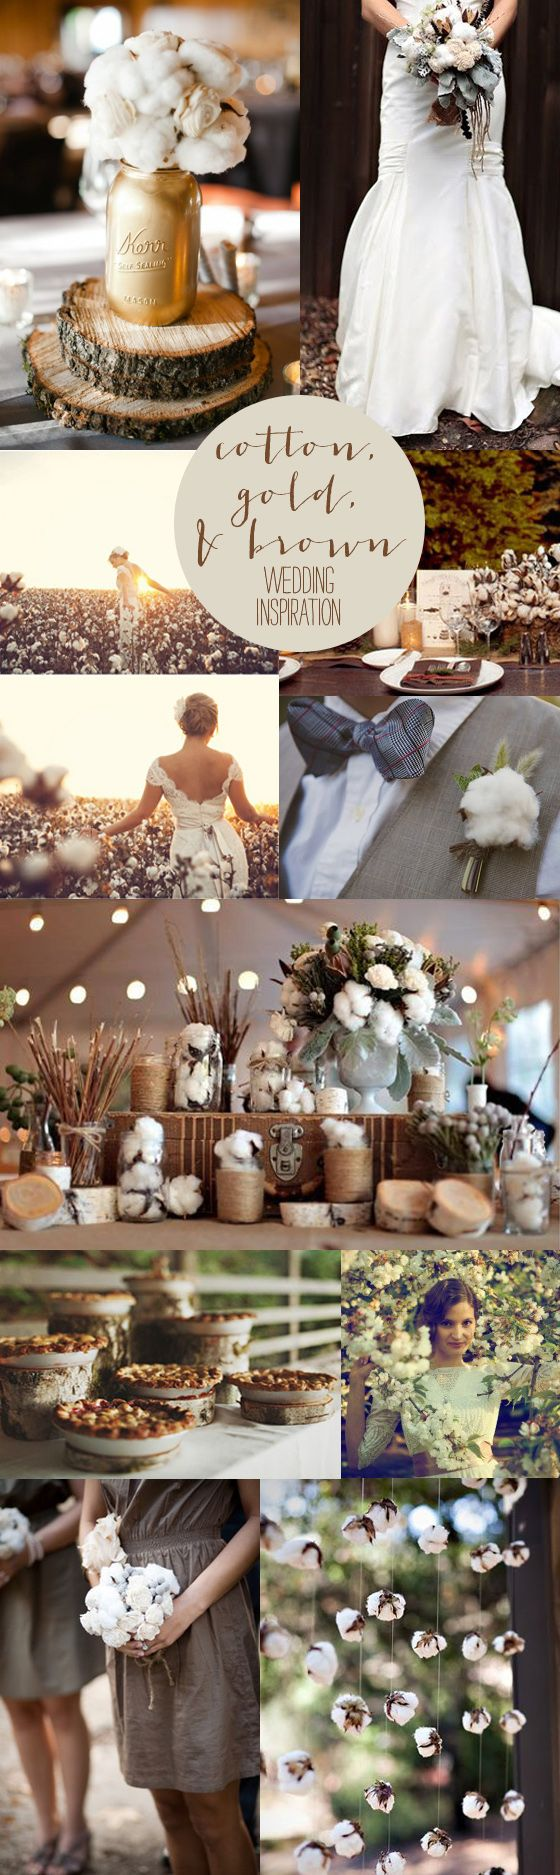 cotton, gold, and brown wedding inspiration